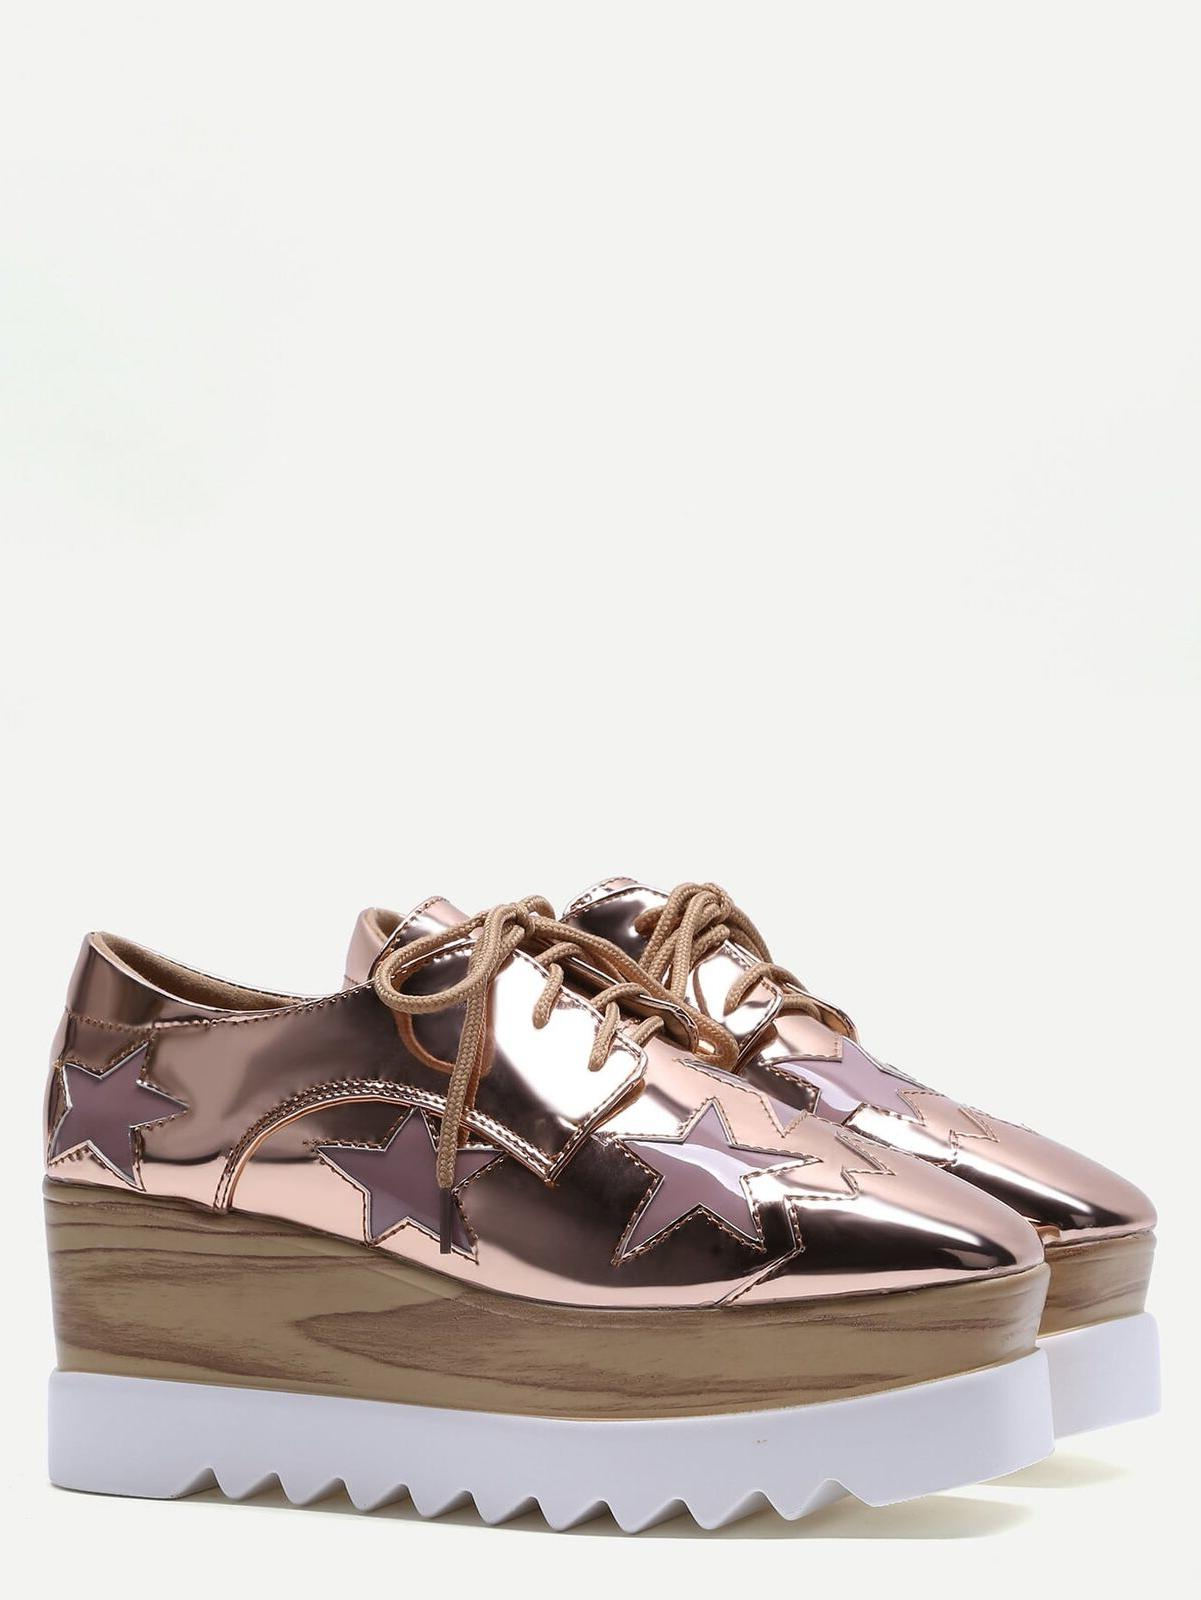 Patent Leather Women's Up Platform Oxfords Heel Casual Pumps